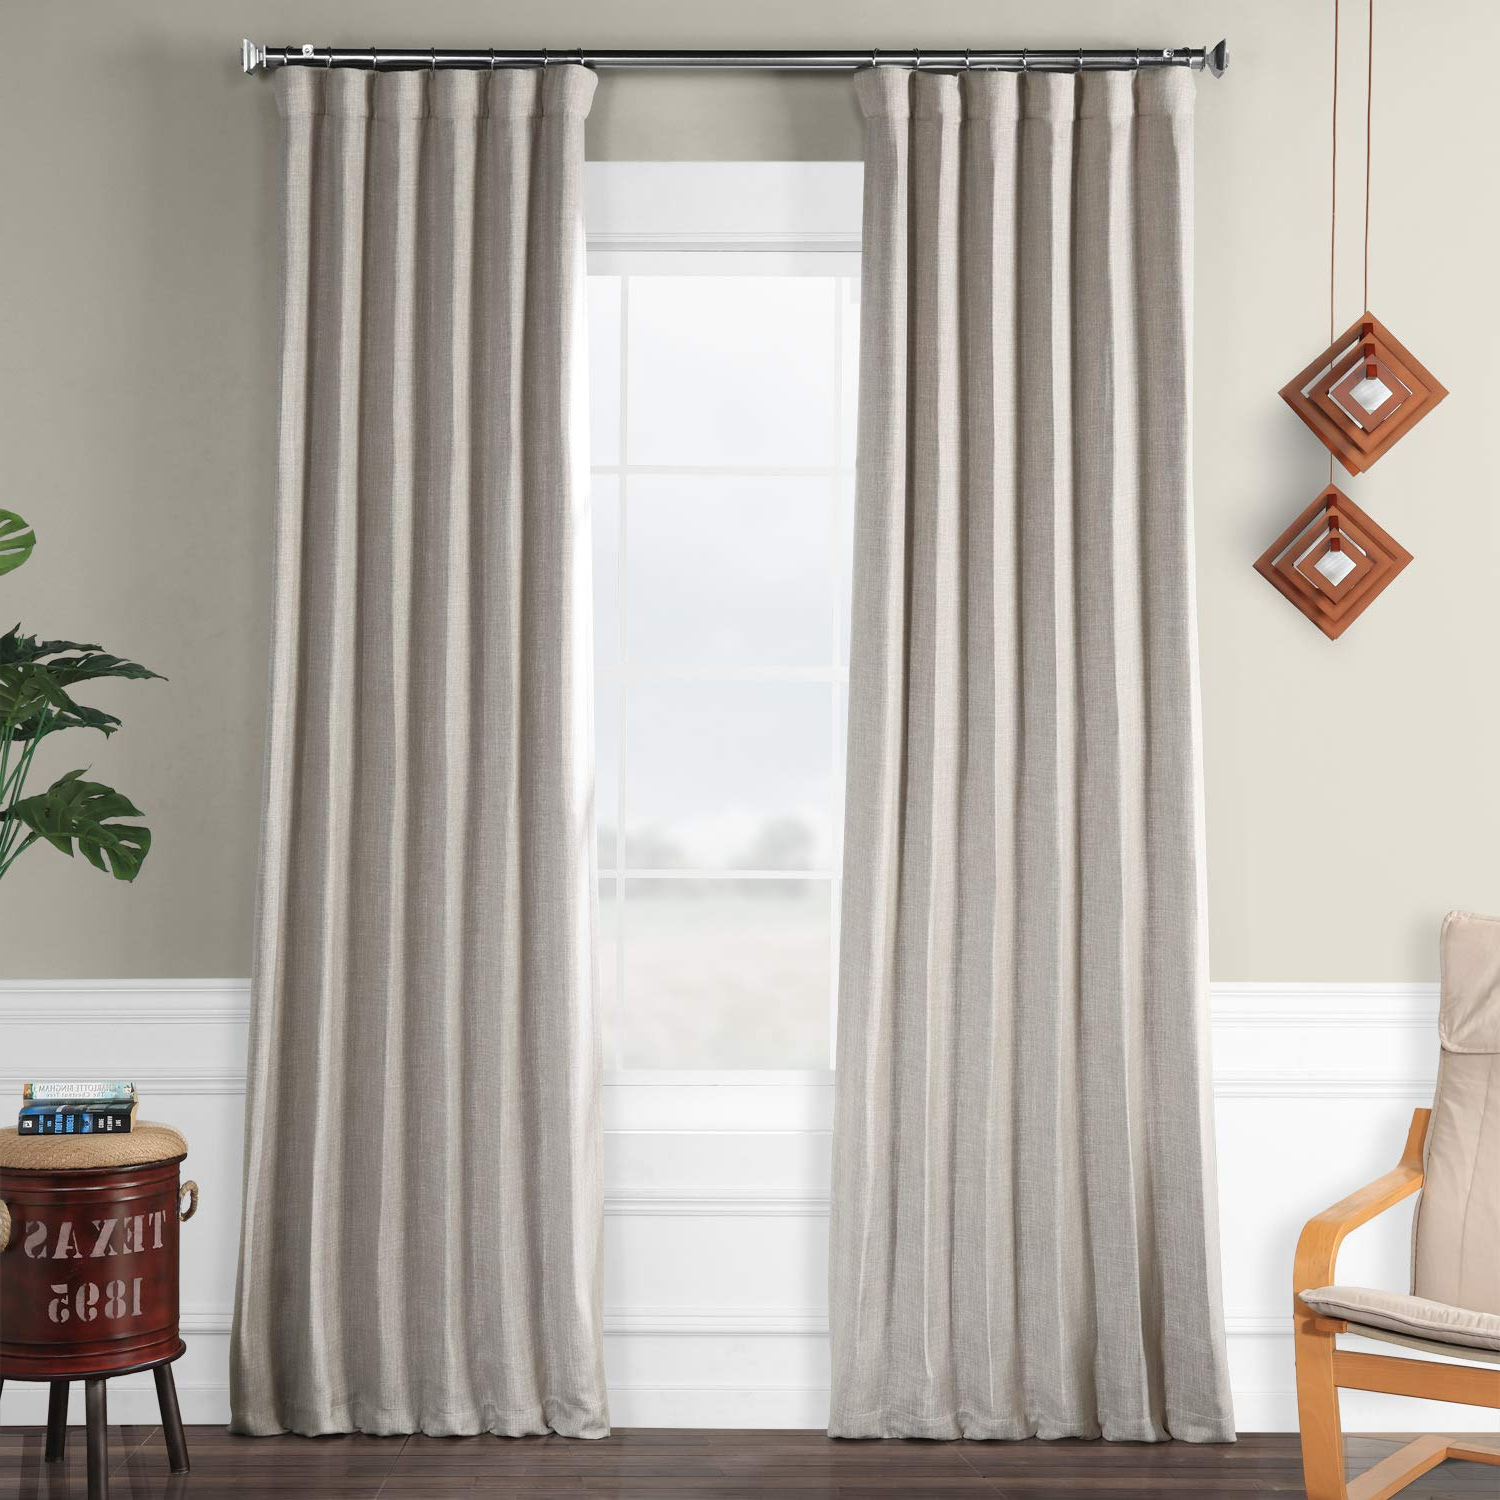 Well Known Faux Linen Blackout Curtains Regarding Hpd Half Price Drapes Boch Ln1858 96 Faux Linen Blackout Room Darkening Curtains, 50 X 96, Clay (View 10 of 20)